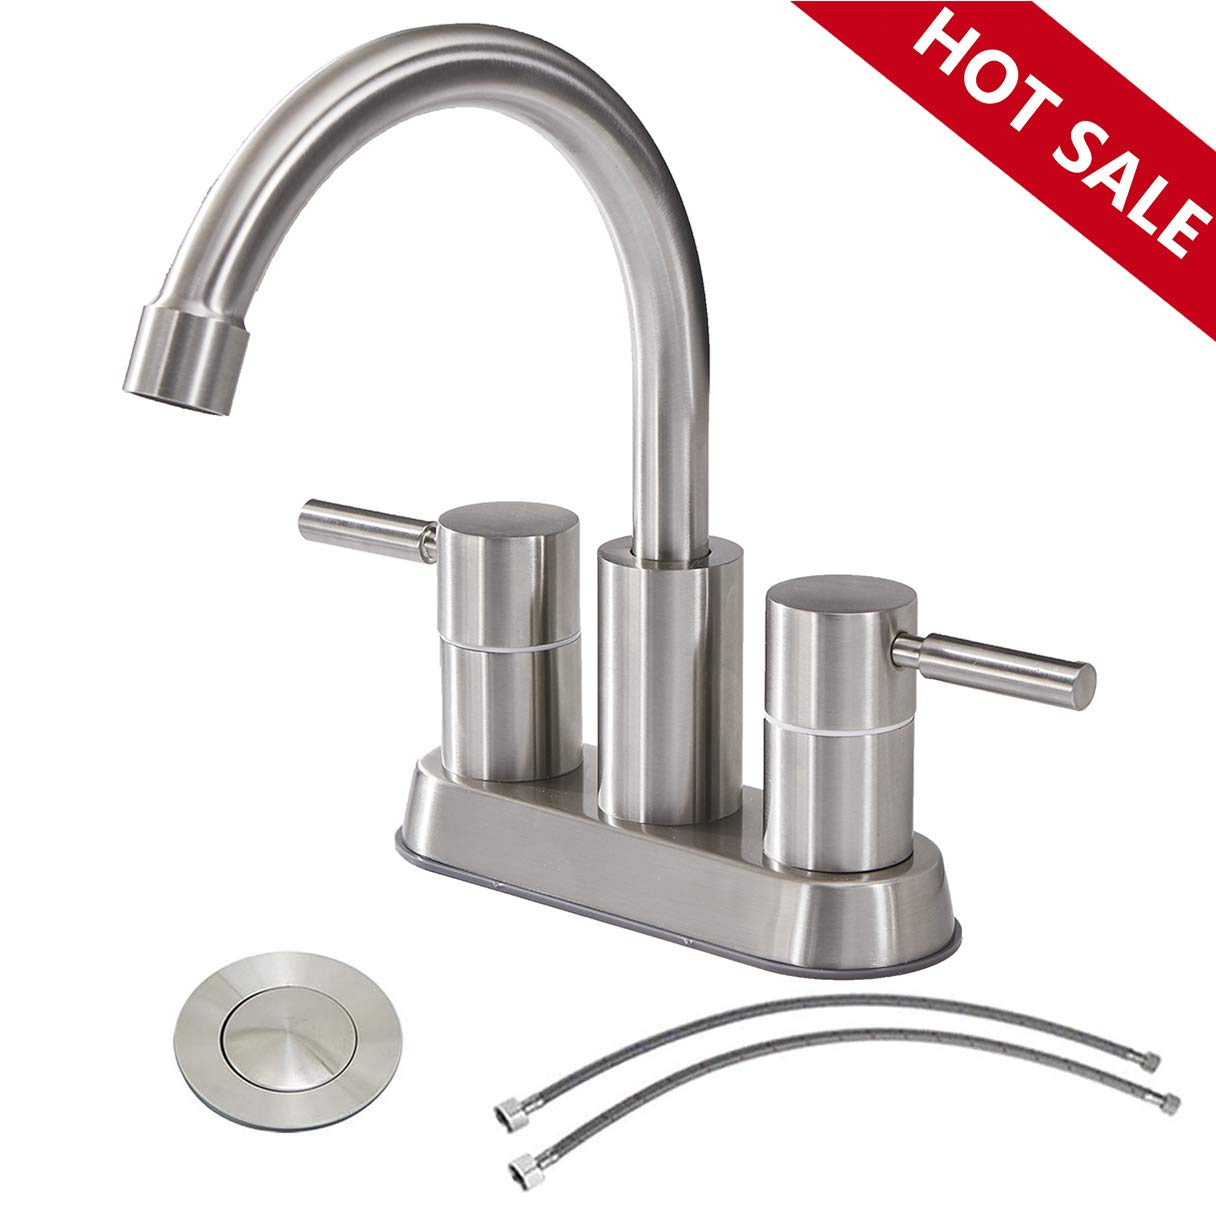 Commercial Double Handle Brushed Nickel Bathroom Faucet, Stainless Steel Bathroom Sink Faucet Lavatory Faucets With Pop-Up Drain and Hot & Cold Water Hose by IKEBANA